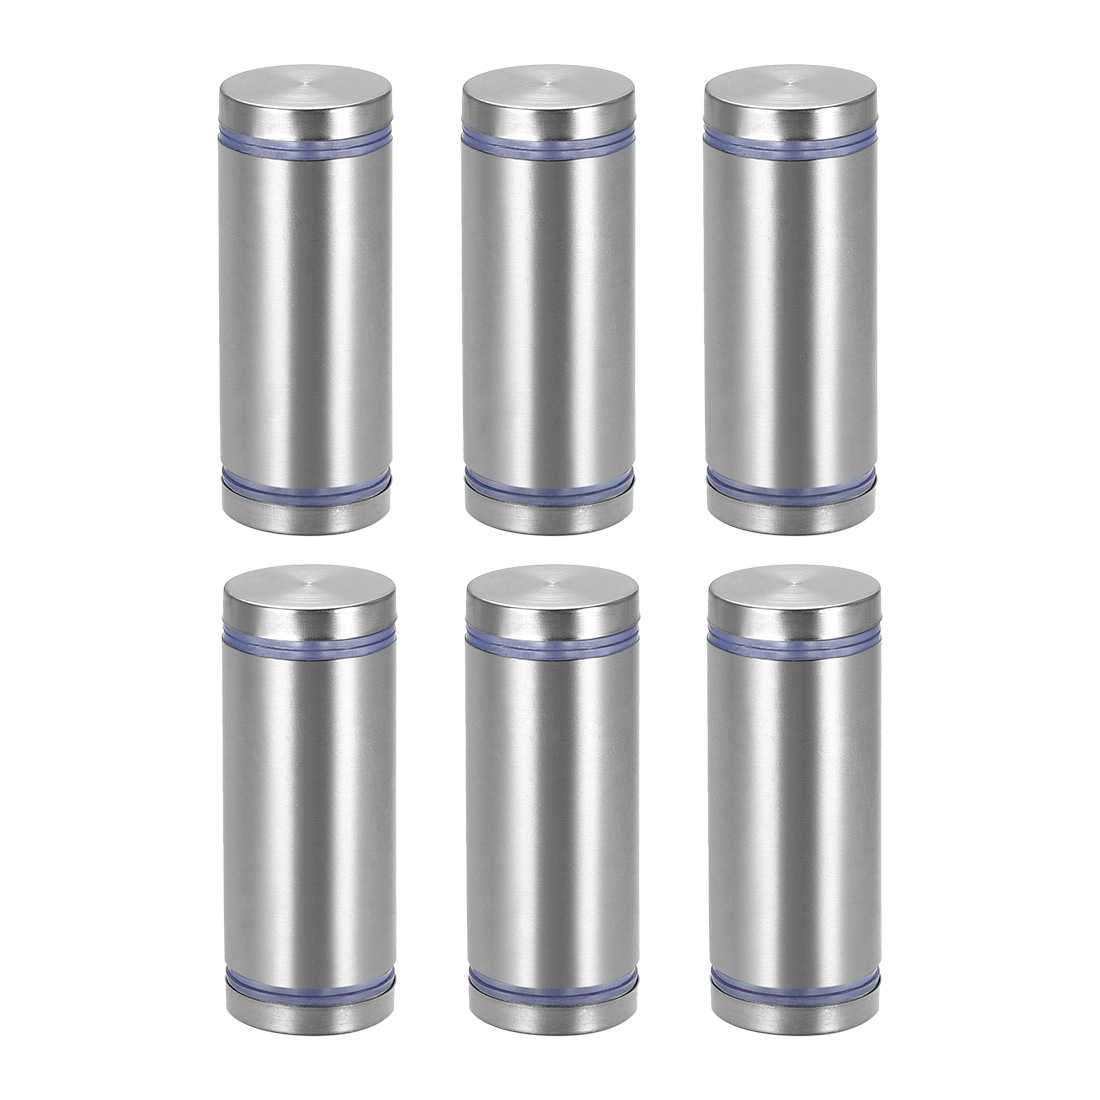 Glass Standoff Double Head Stainless Steel Standoff Holder 25mm x 65mm 6 Pcs